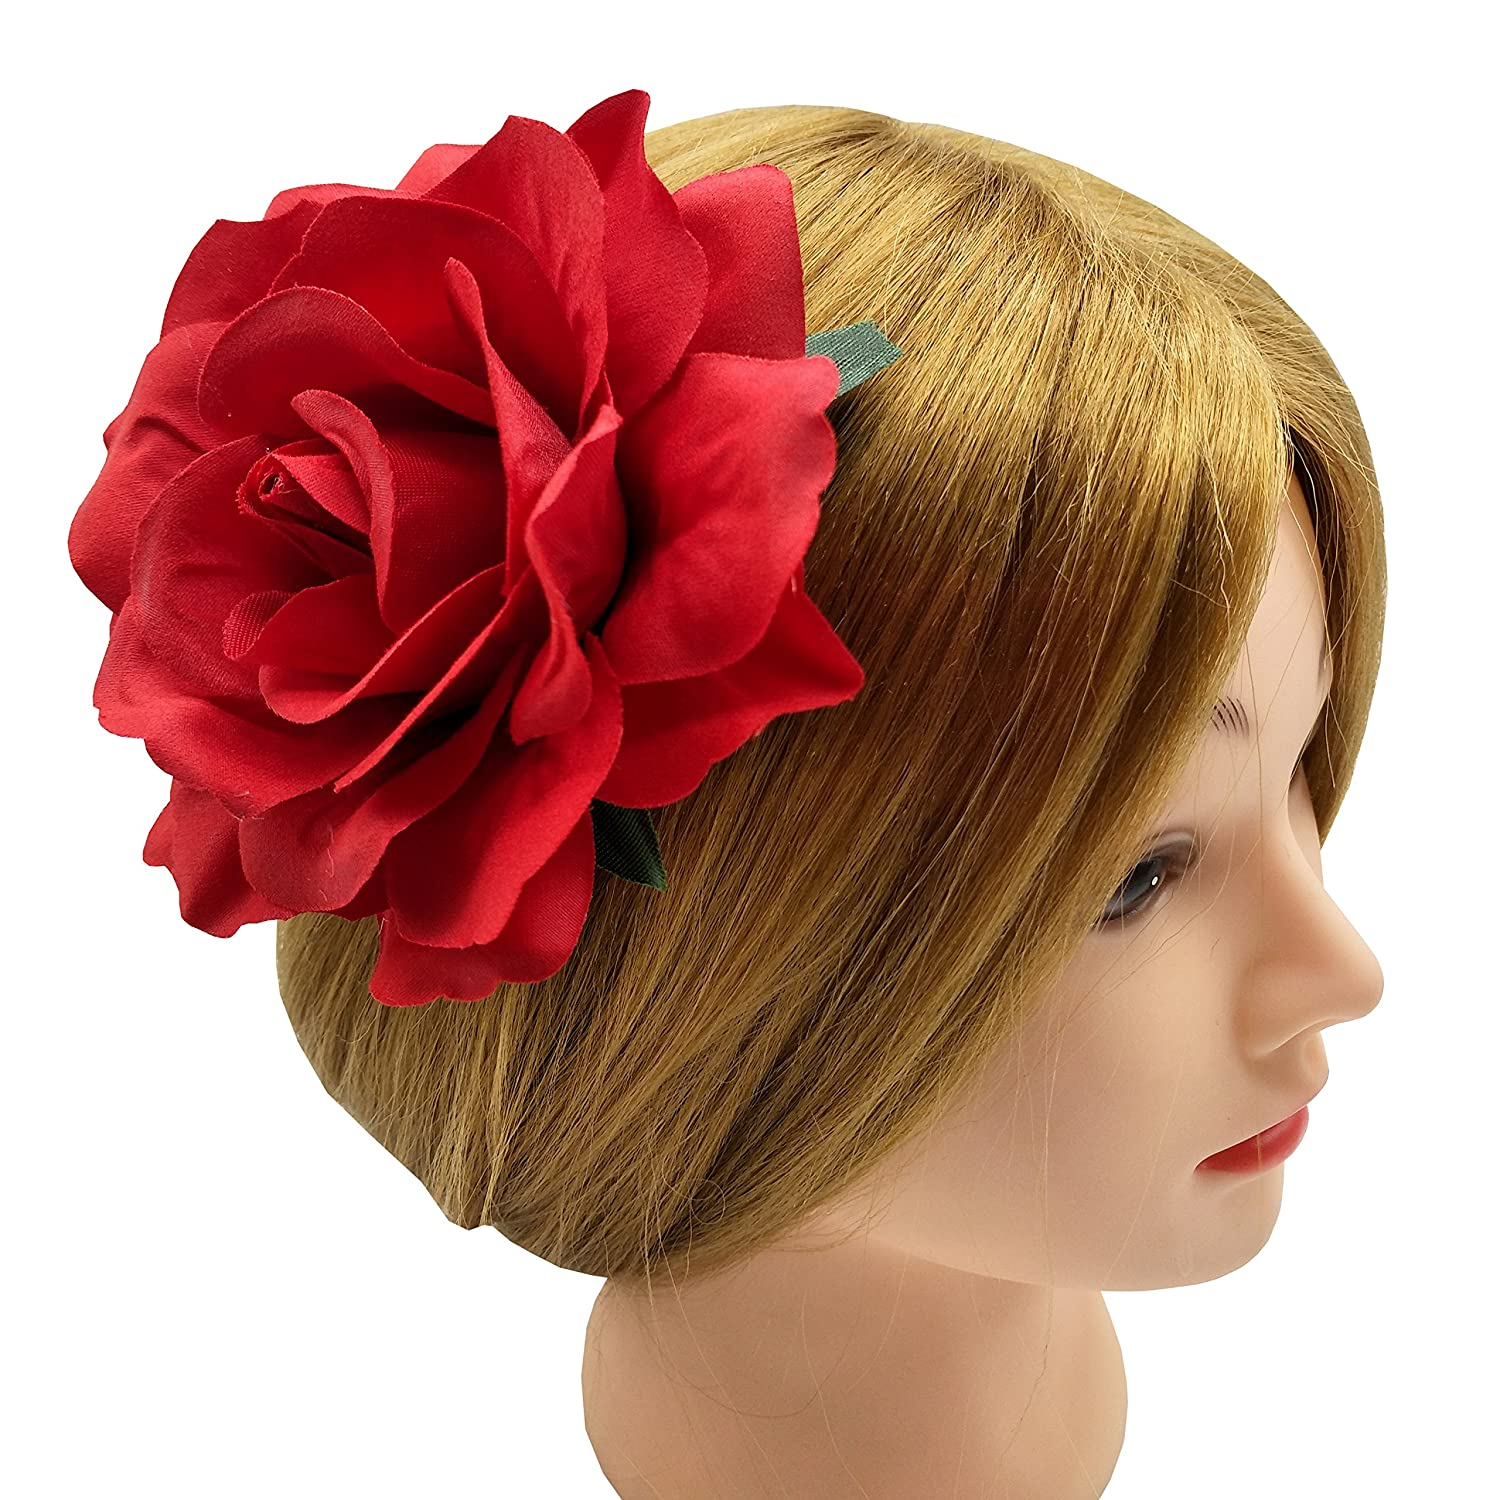 1940s Hairstyles- History of Women's Hairstyles La Homein Sanrich 4pcs/Pack Fabric Rose Hair Flowers Clips Hairpin Brooch Hair Accessory Wedding Party Headpieces $6.99 AT vintagedancer.com